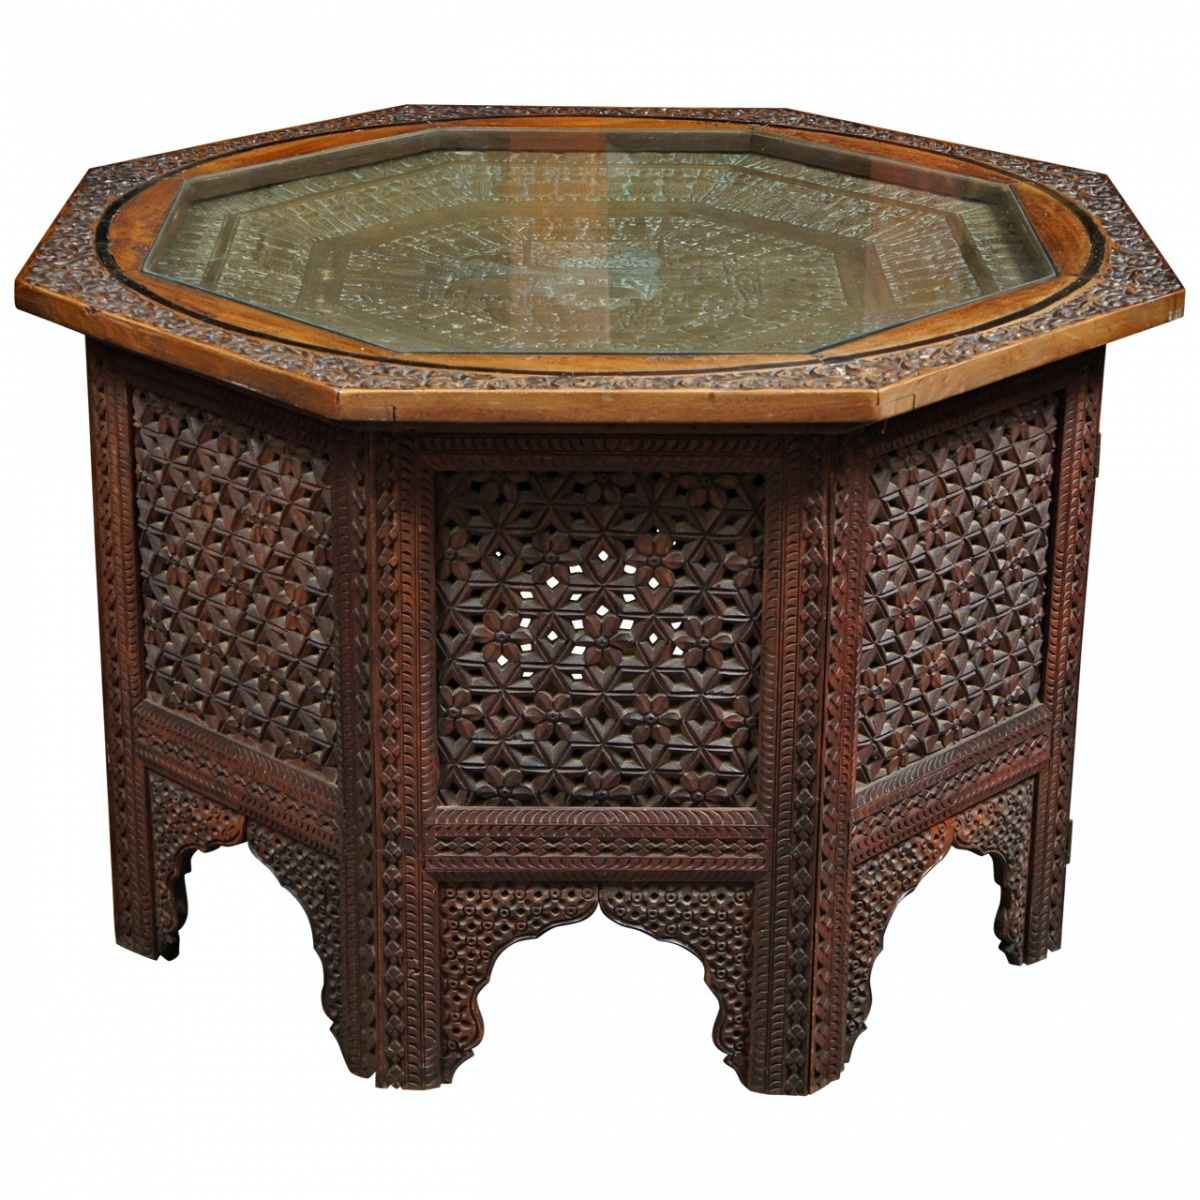 Collection In Carved Wood Coffee Table With Wooden Coffee Tables for Round Carved Wood Coffee Tables (Image 10 of 30)